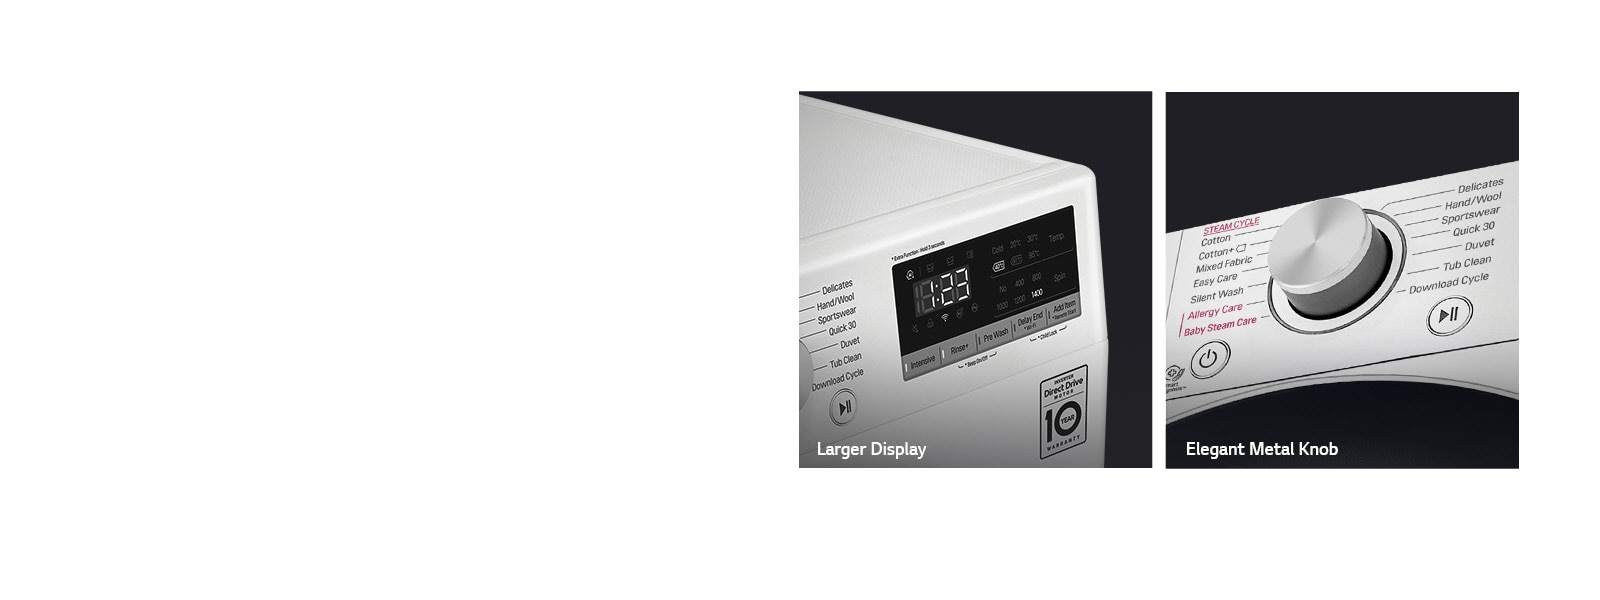 WM-Vivace-V500-VC4-White-07-Design-Desktop